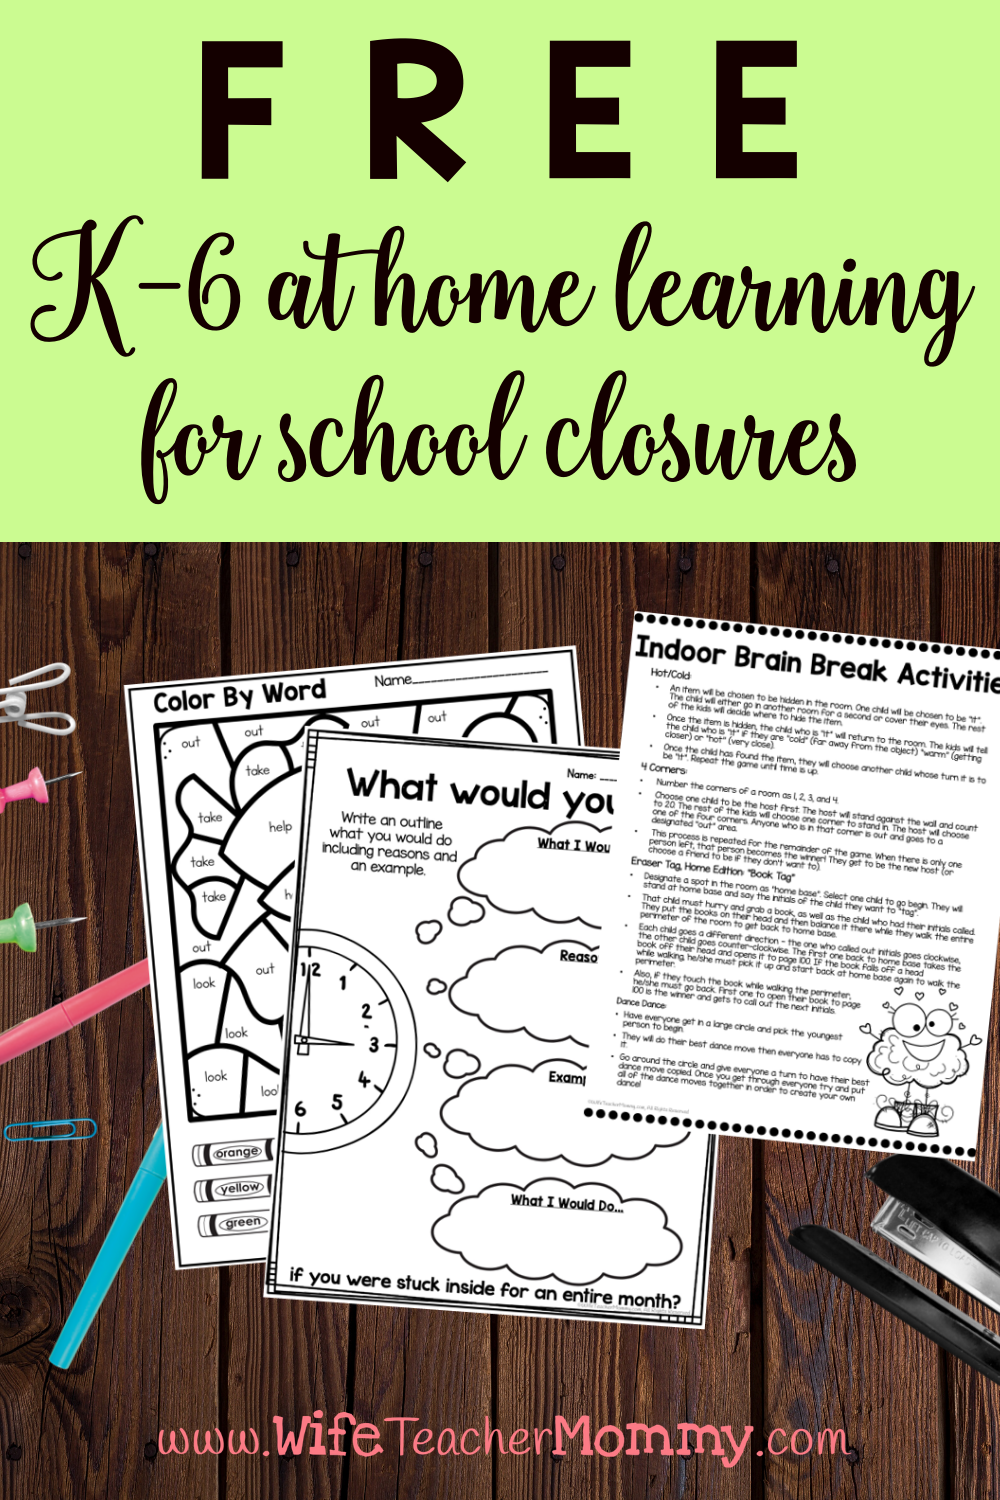 Photo of K-6 At Home Learning Freebie for School Closures